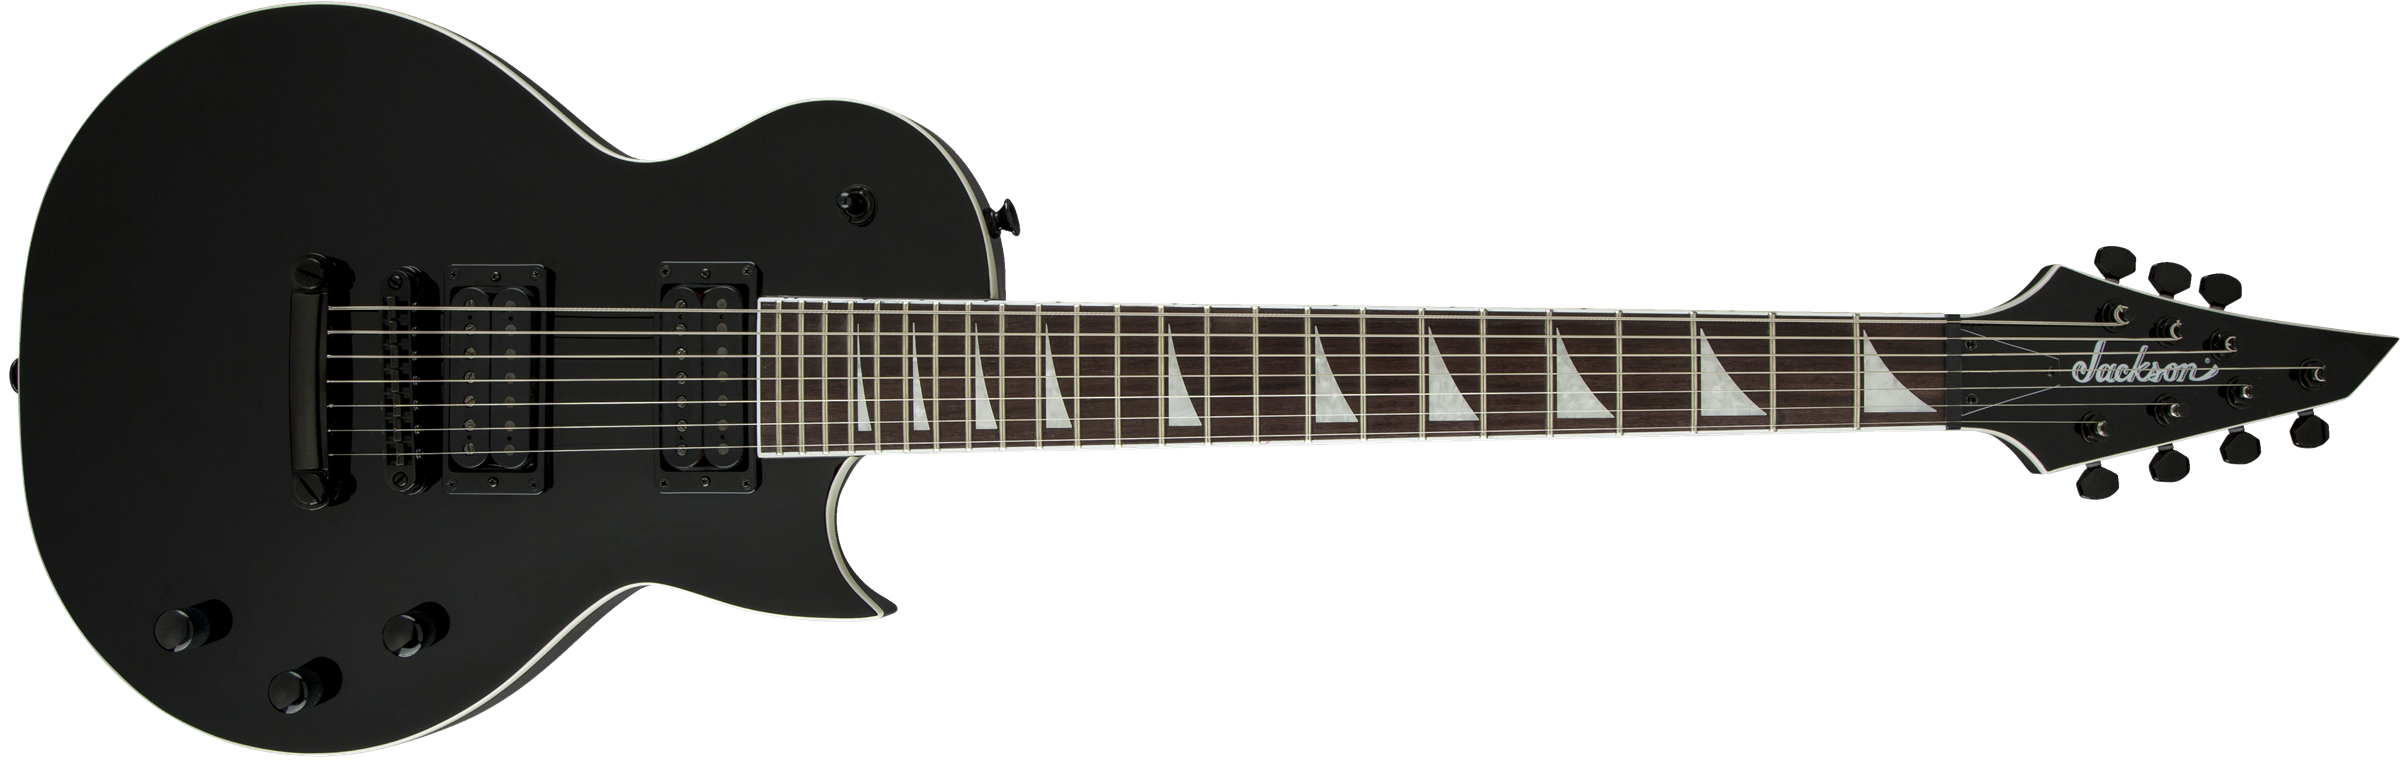 Guitars X Series Monarkh Scx7, Rosewood Fingerboard, Gloss Black Ideal For  Sonic Annihilation And Inciting A Spot Of Musical Mayhem, The Jackson   X  ...